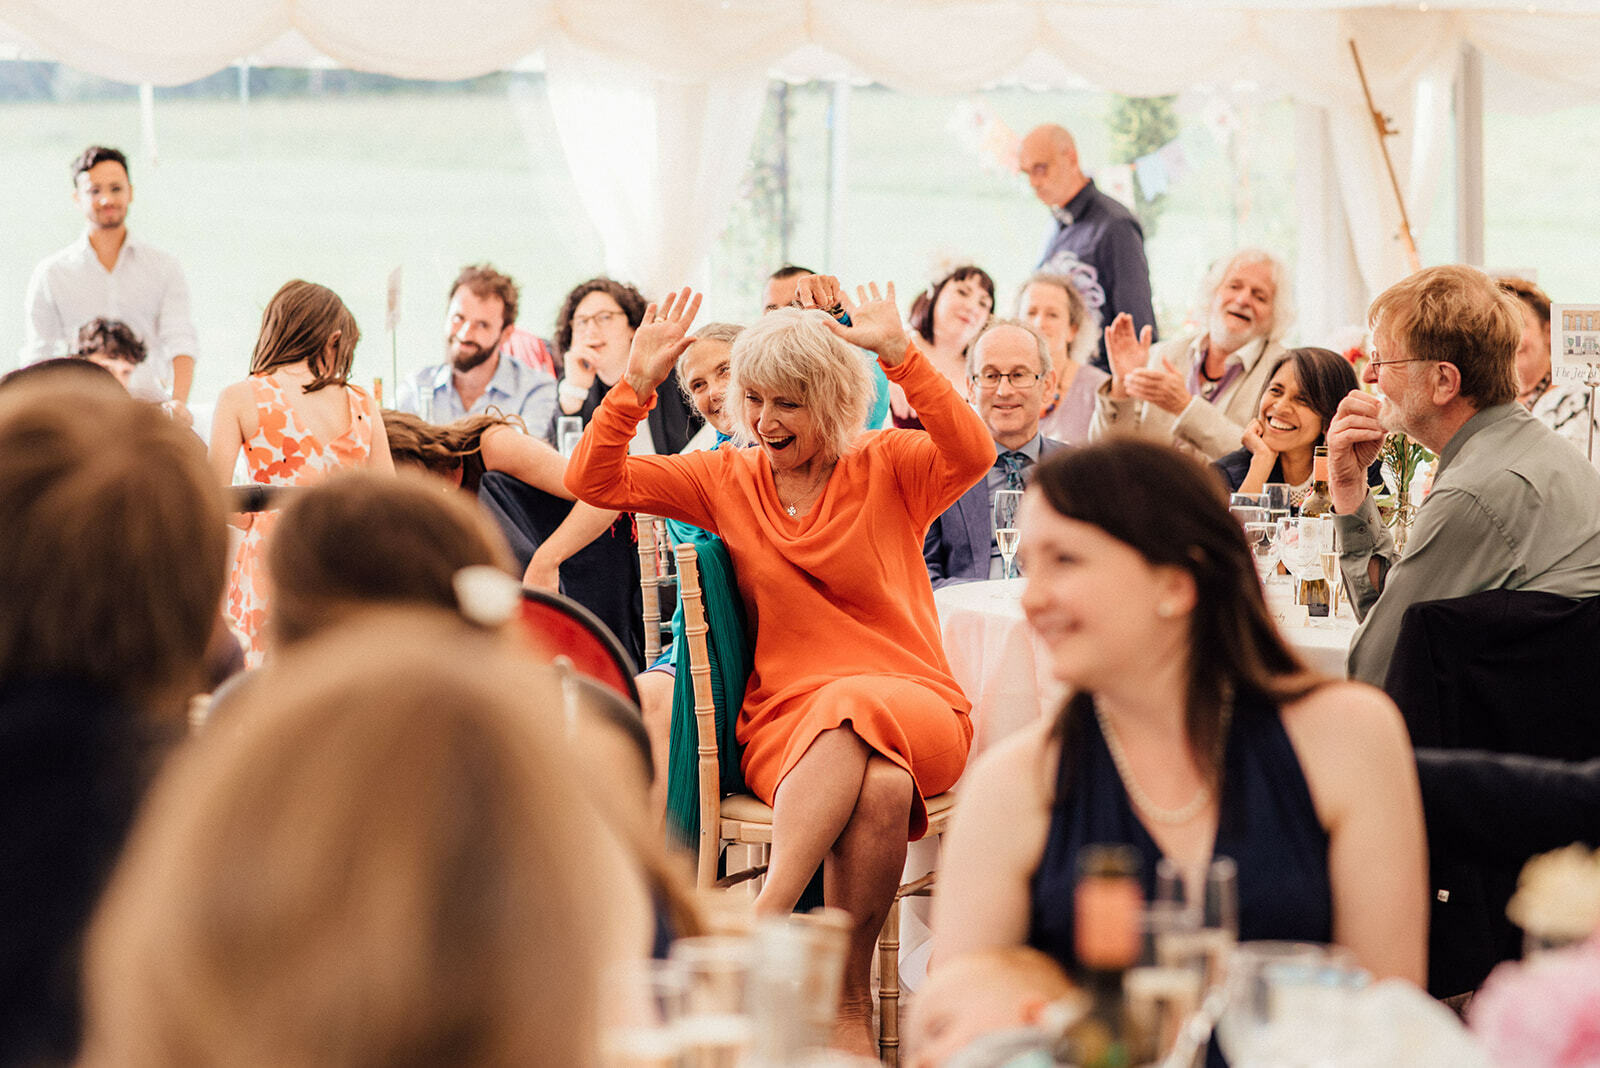 guest raises her hands in the air during speeches